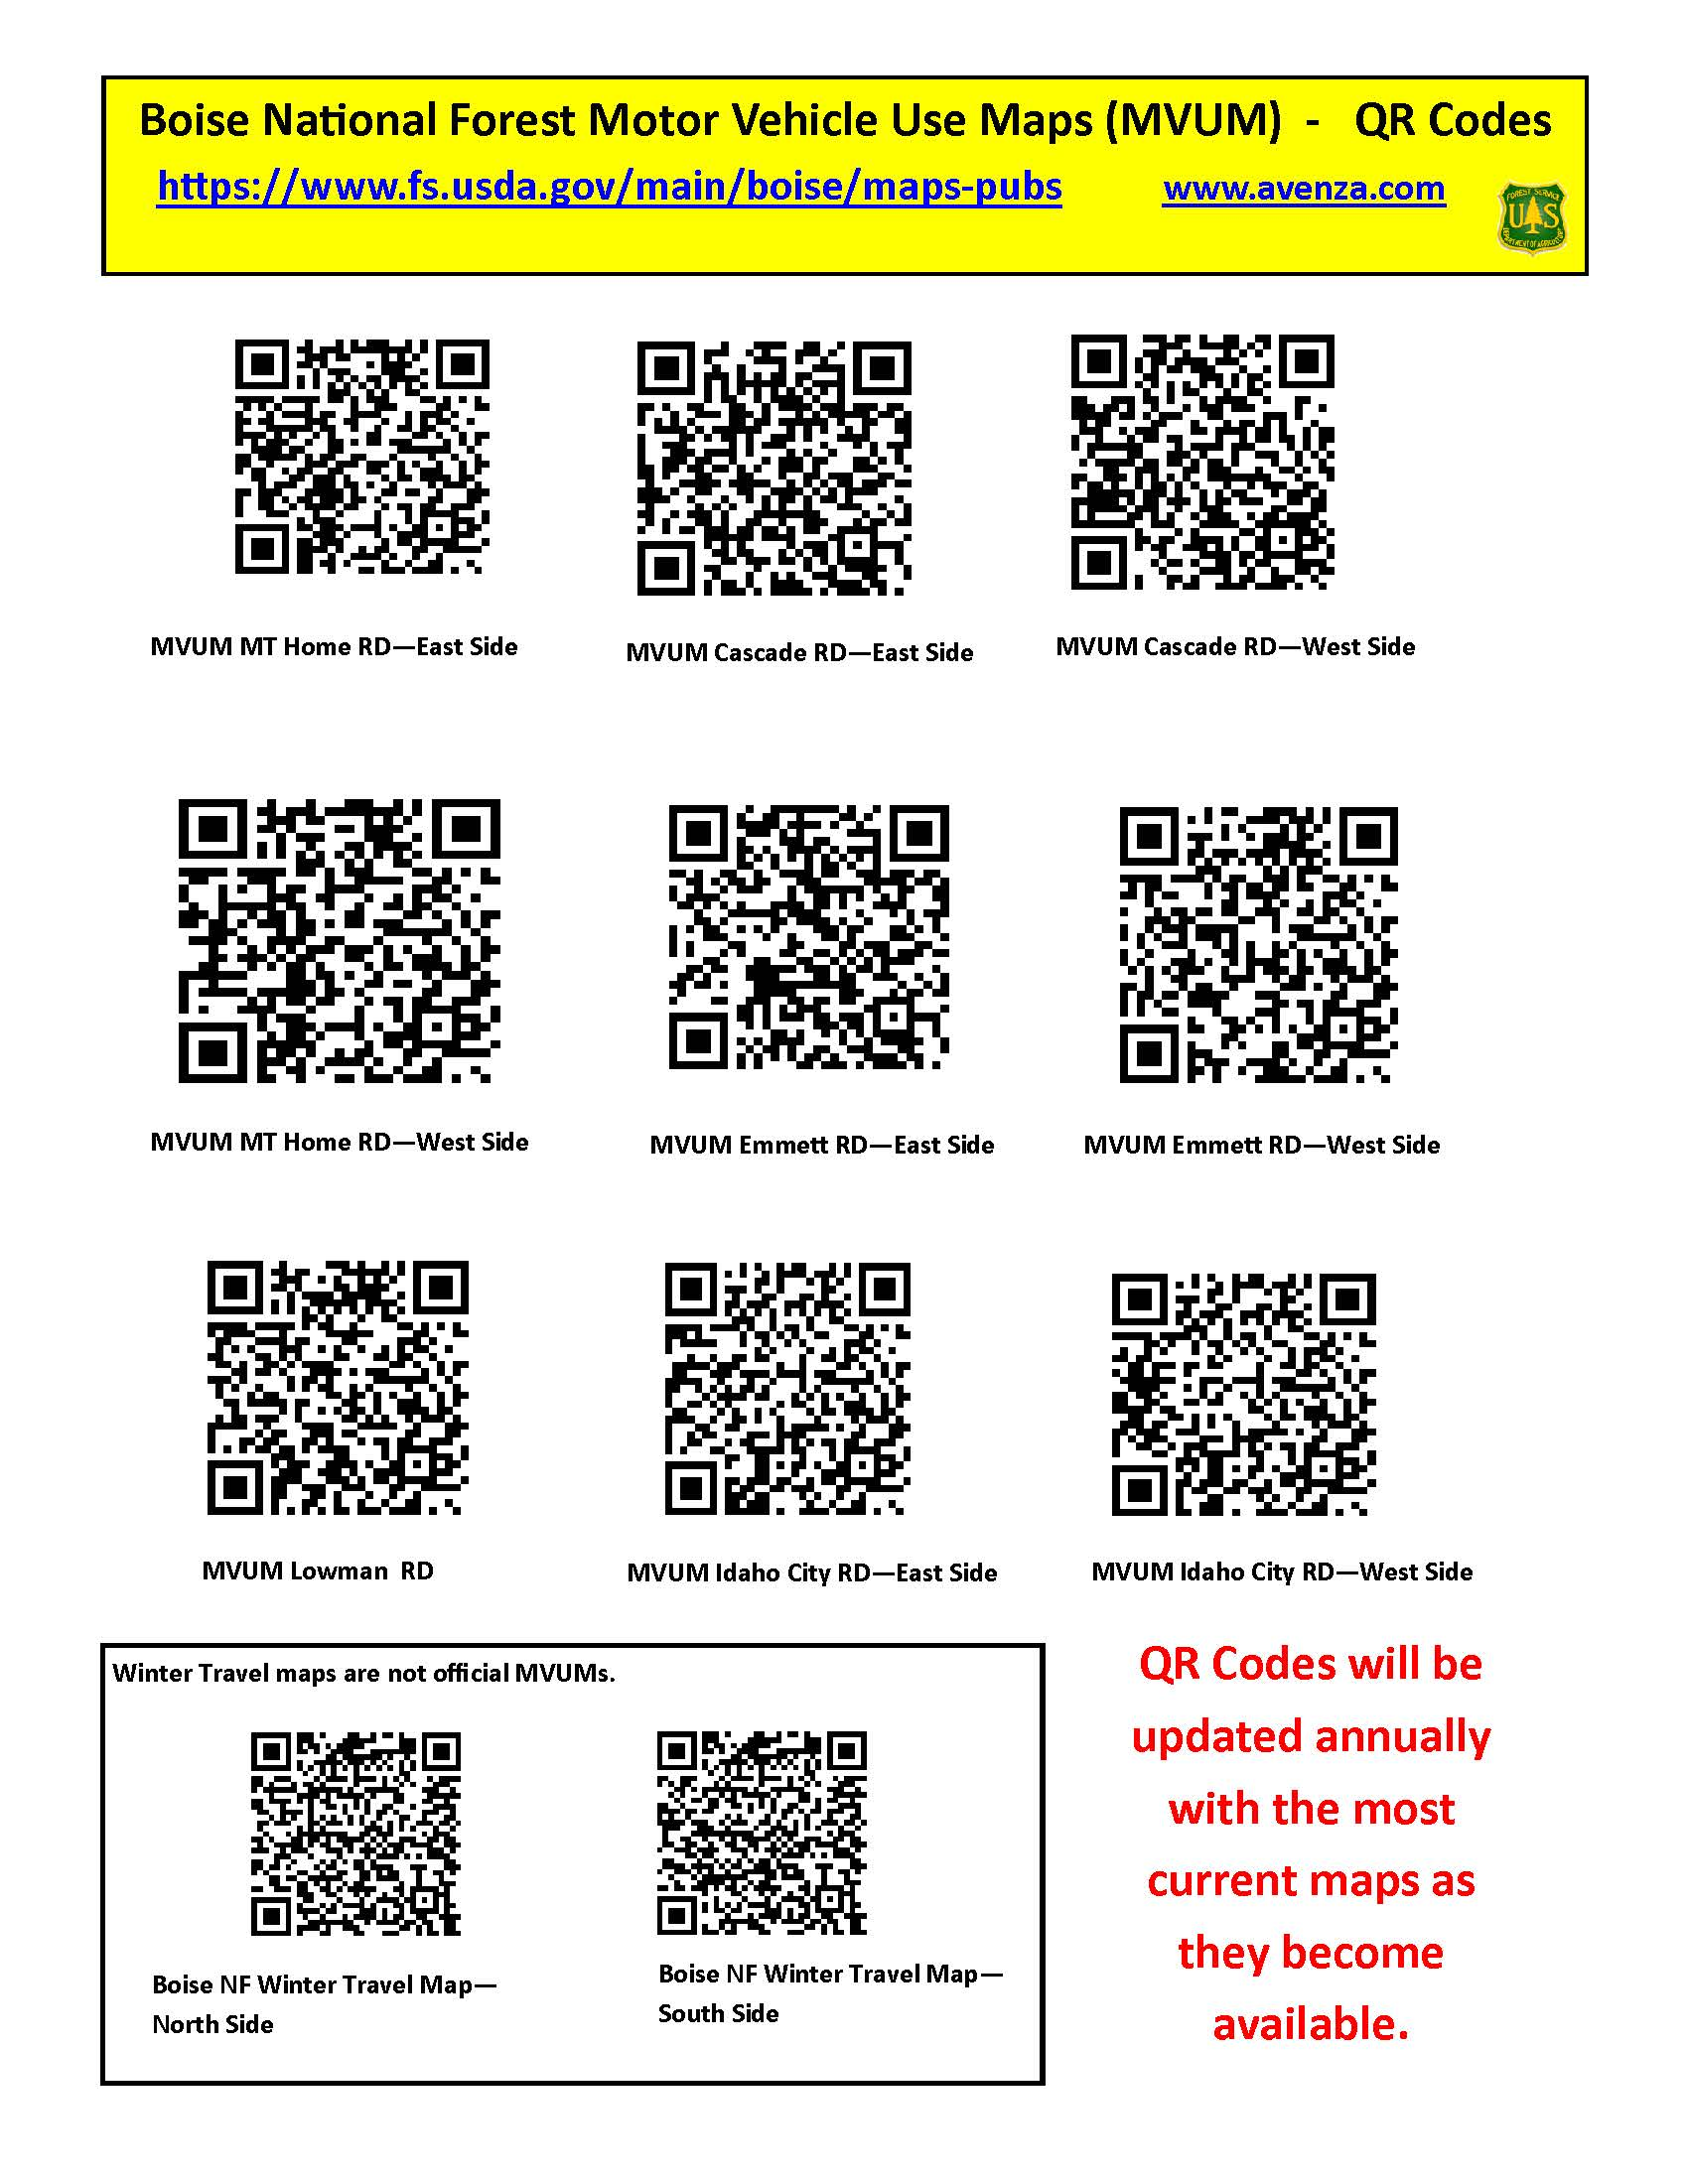 Photo of a document containing 2017 QR codes for MVUM maps